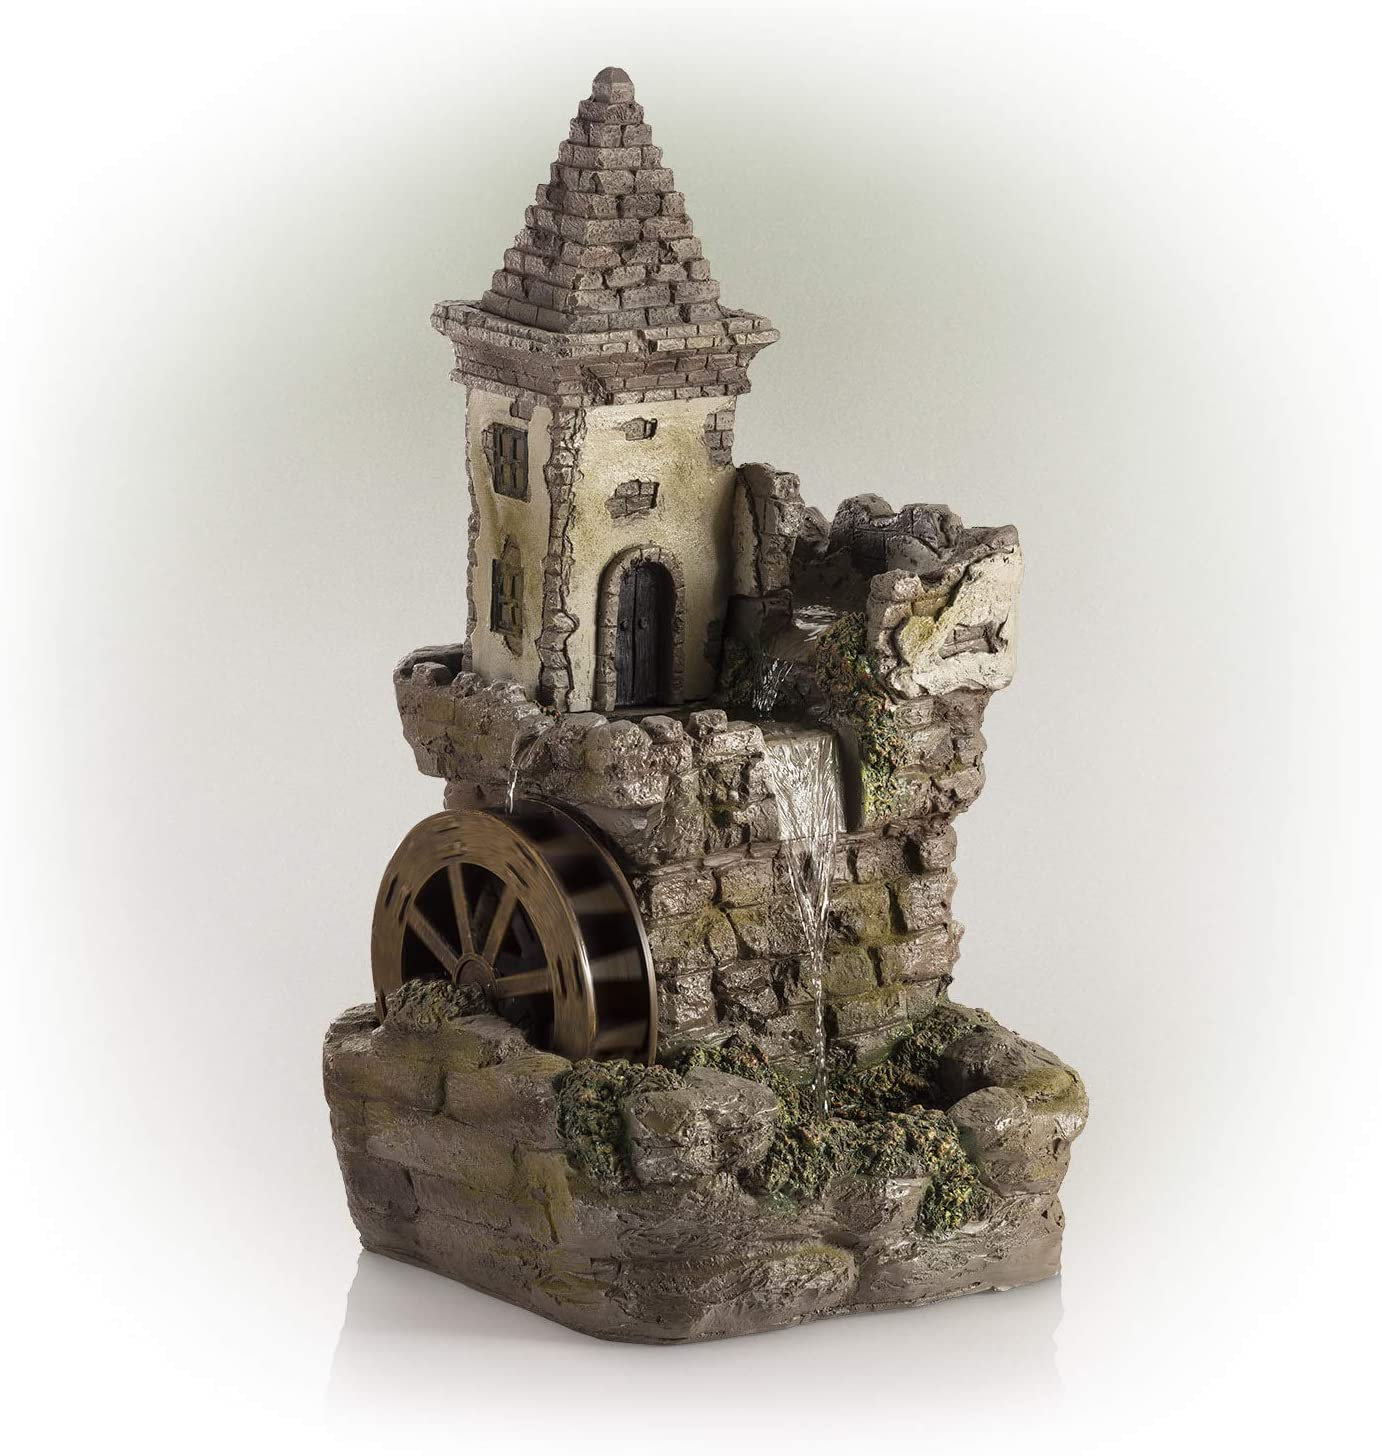 Alpine Corporation USA1164 Fairy Village Waterwheel Tiered Fountain, 35 Inch Tall, Multicolor